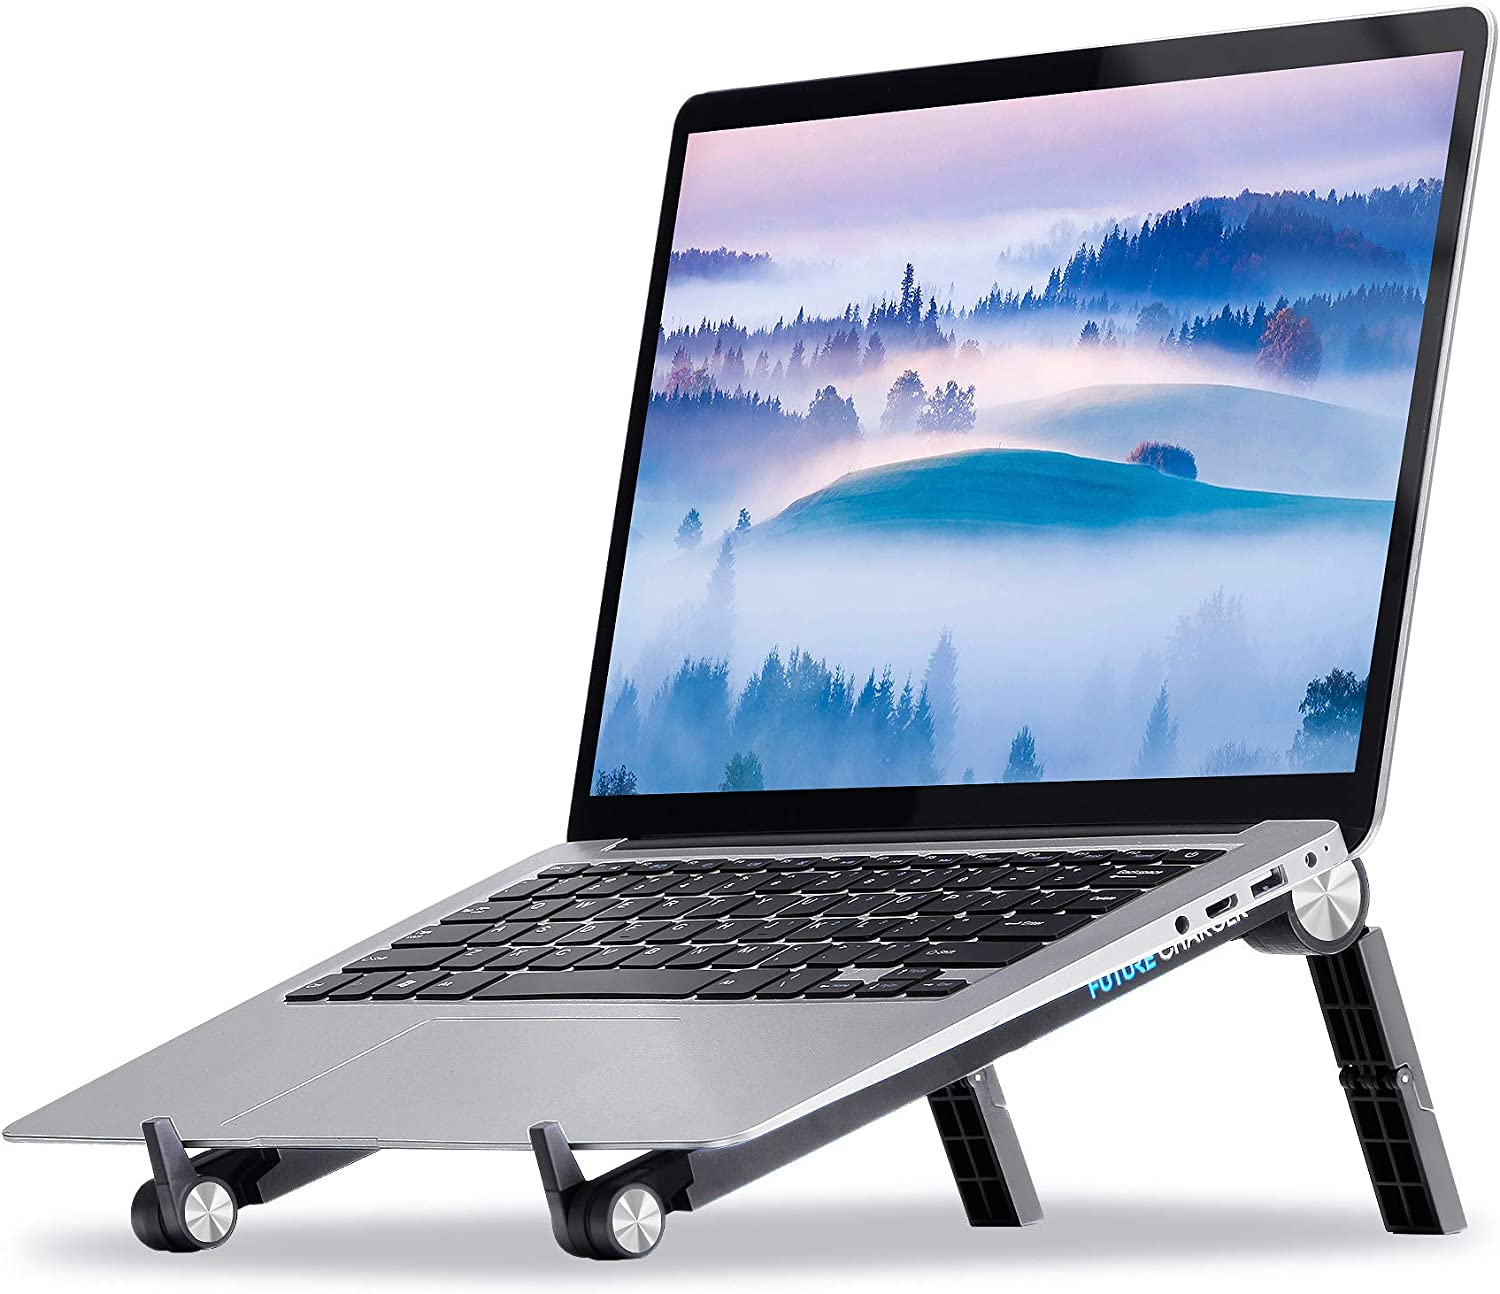 """Laptop Stand, Laptop Holder Adjustable Height, Portable Computer Stand for Laptop Compatible with Apple MacBook, Air, Pro, Dell XPS, HP, Lenovo and More 10"""" - 17"""" Notebooks (Black)"""